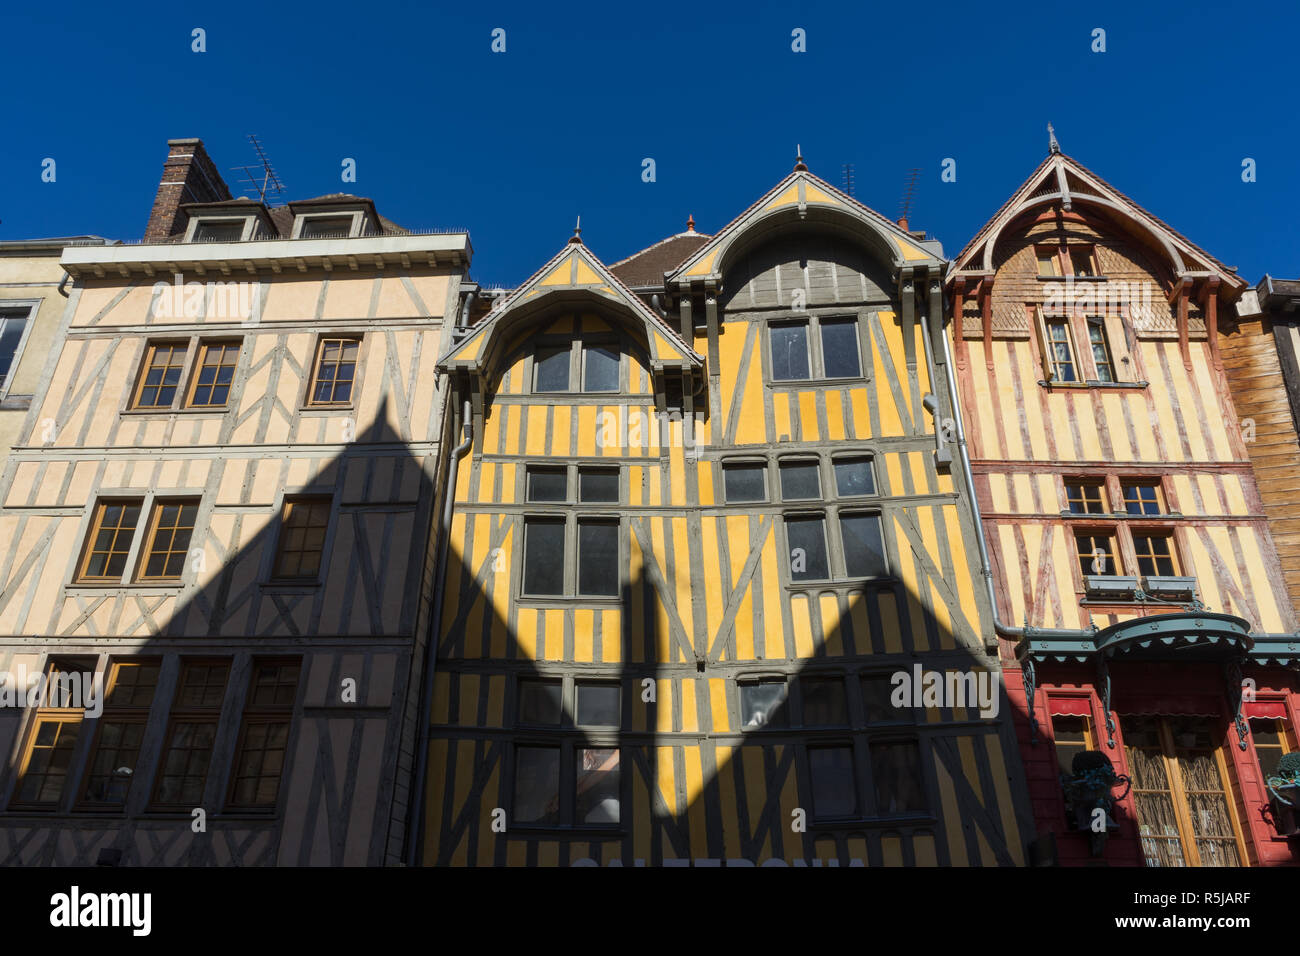 Half timbered lattice construction houses in Troyes France. Troyes is a historical city in France with several half-timbered coloured houses. - Stock Image